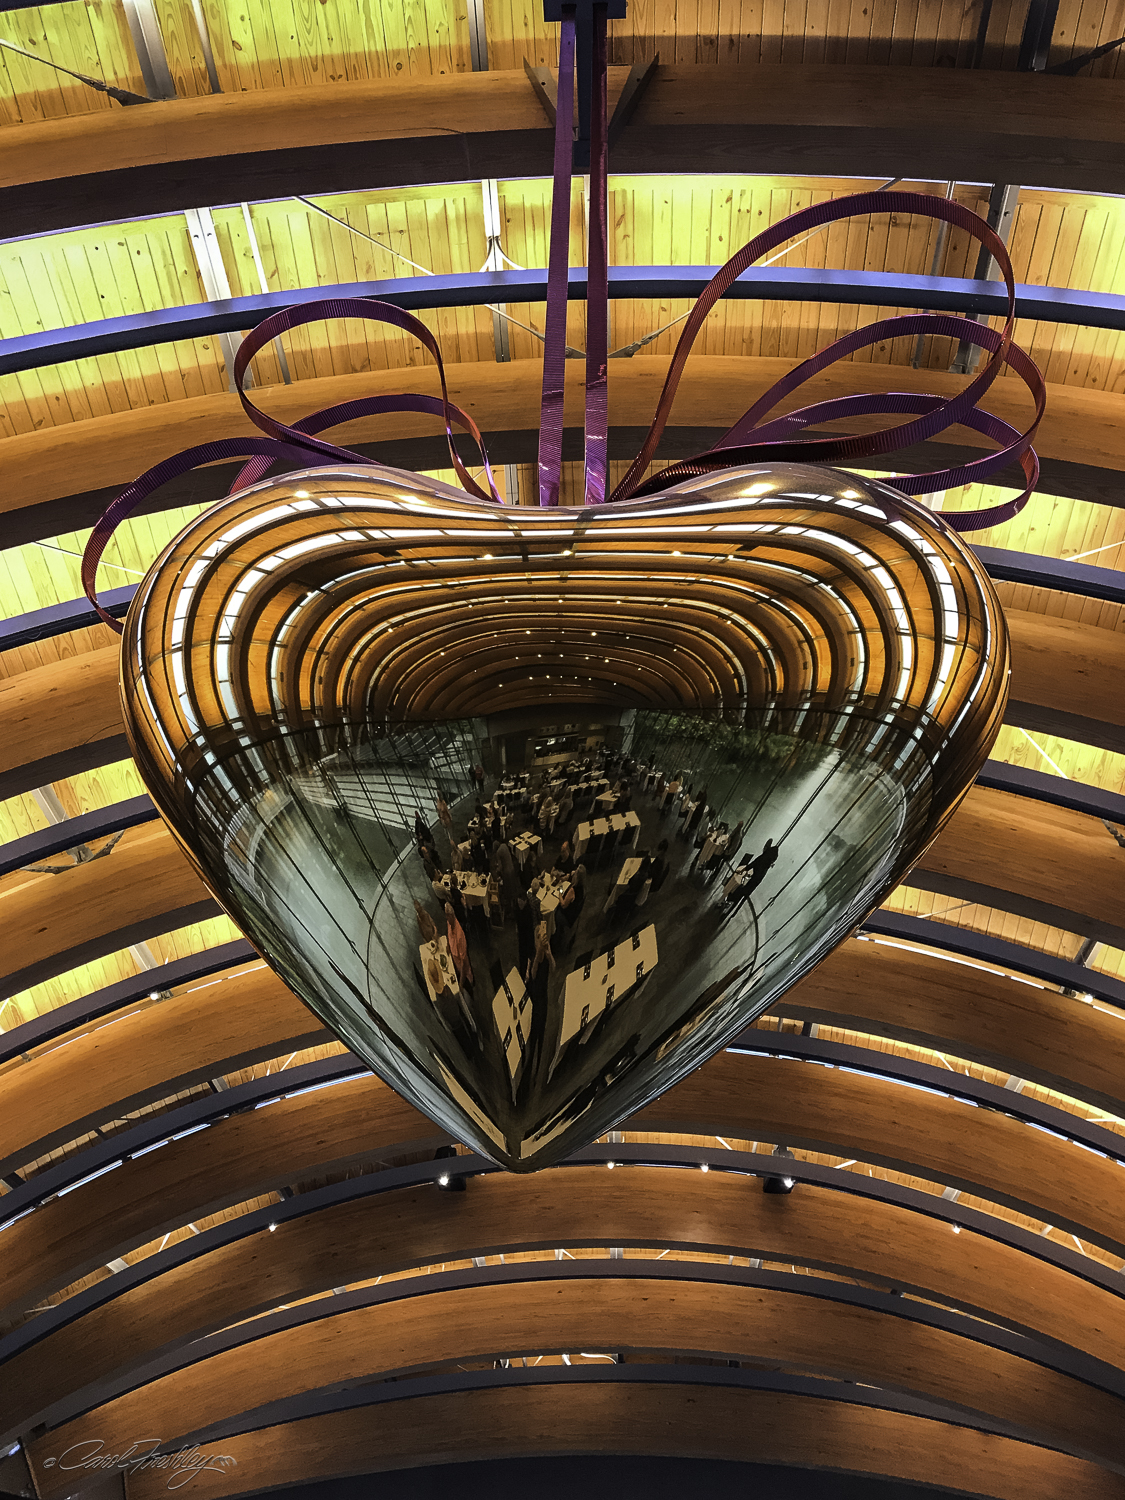 This larger than life heart hangs in the restaurant. I kept being amazed over and over about te impact of these curved beames.